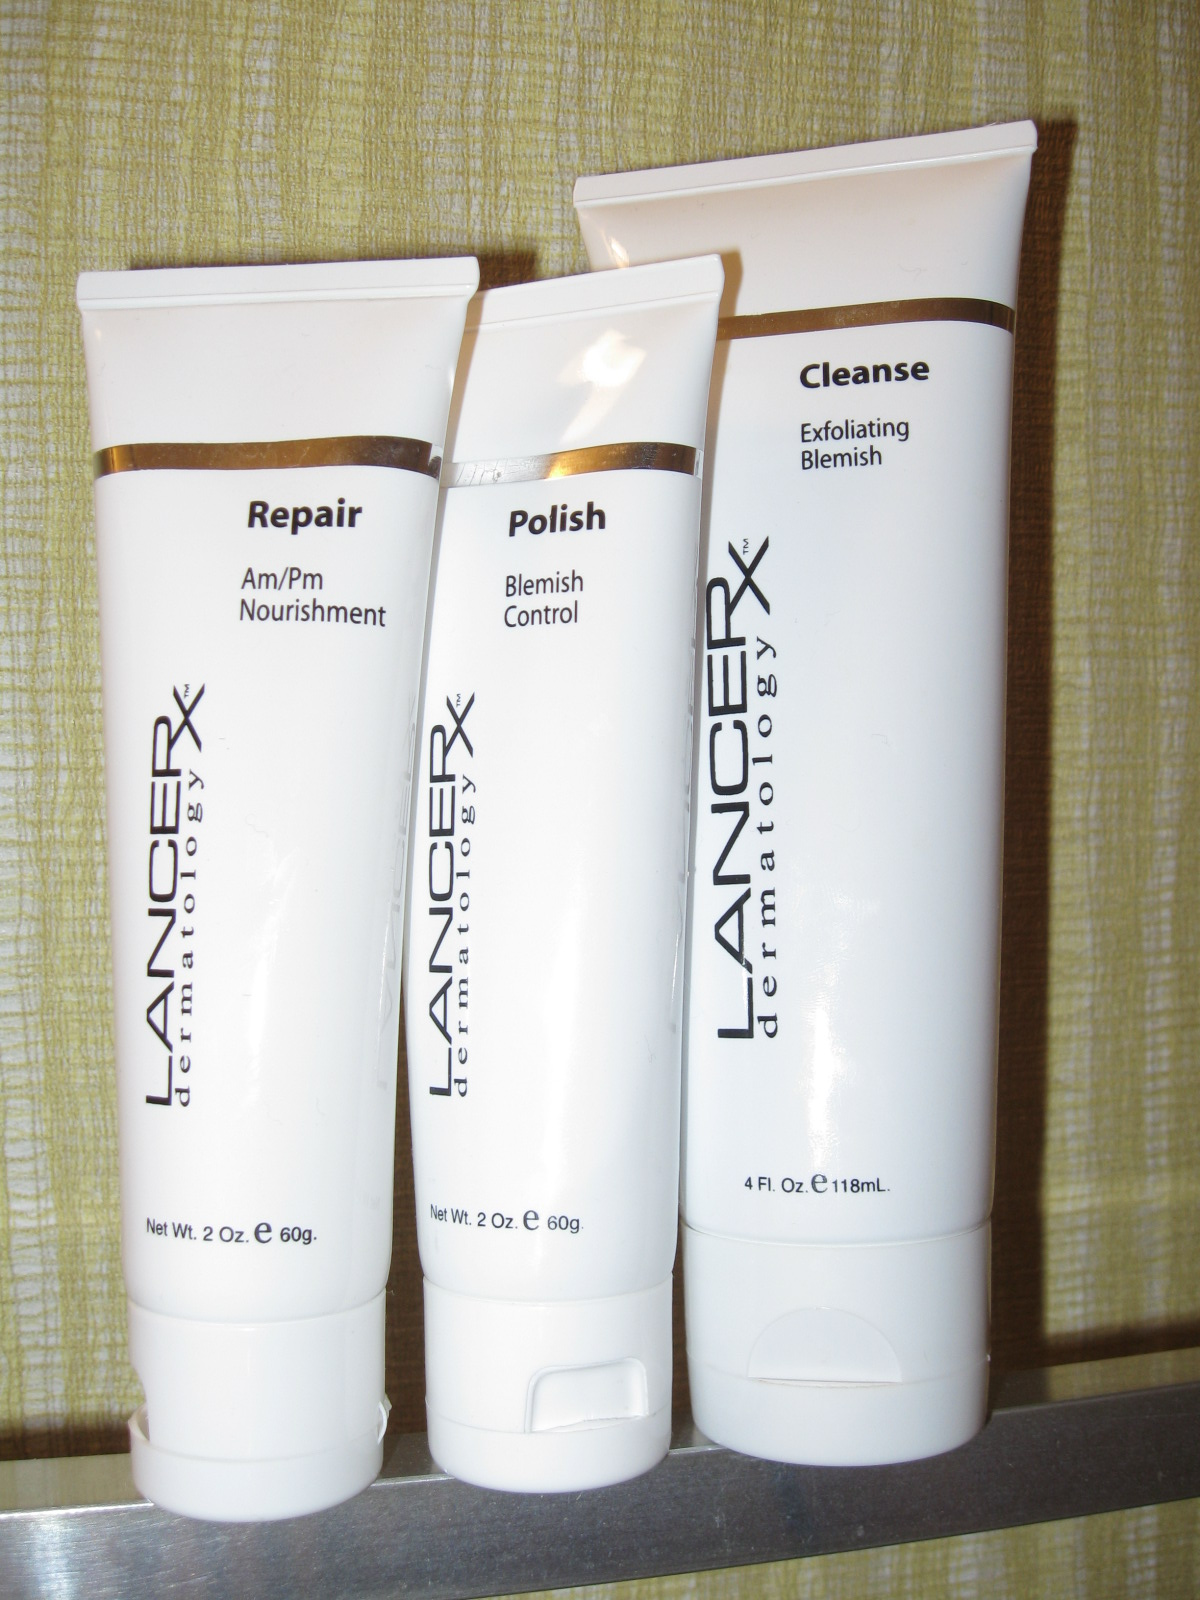 My Makeup Blog Makeup Skin Care And Beyond Clear Skin With The